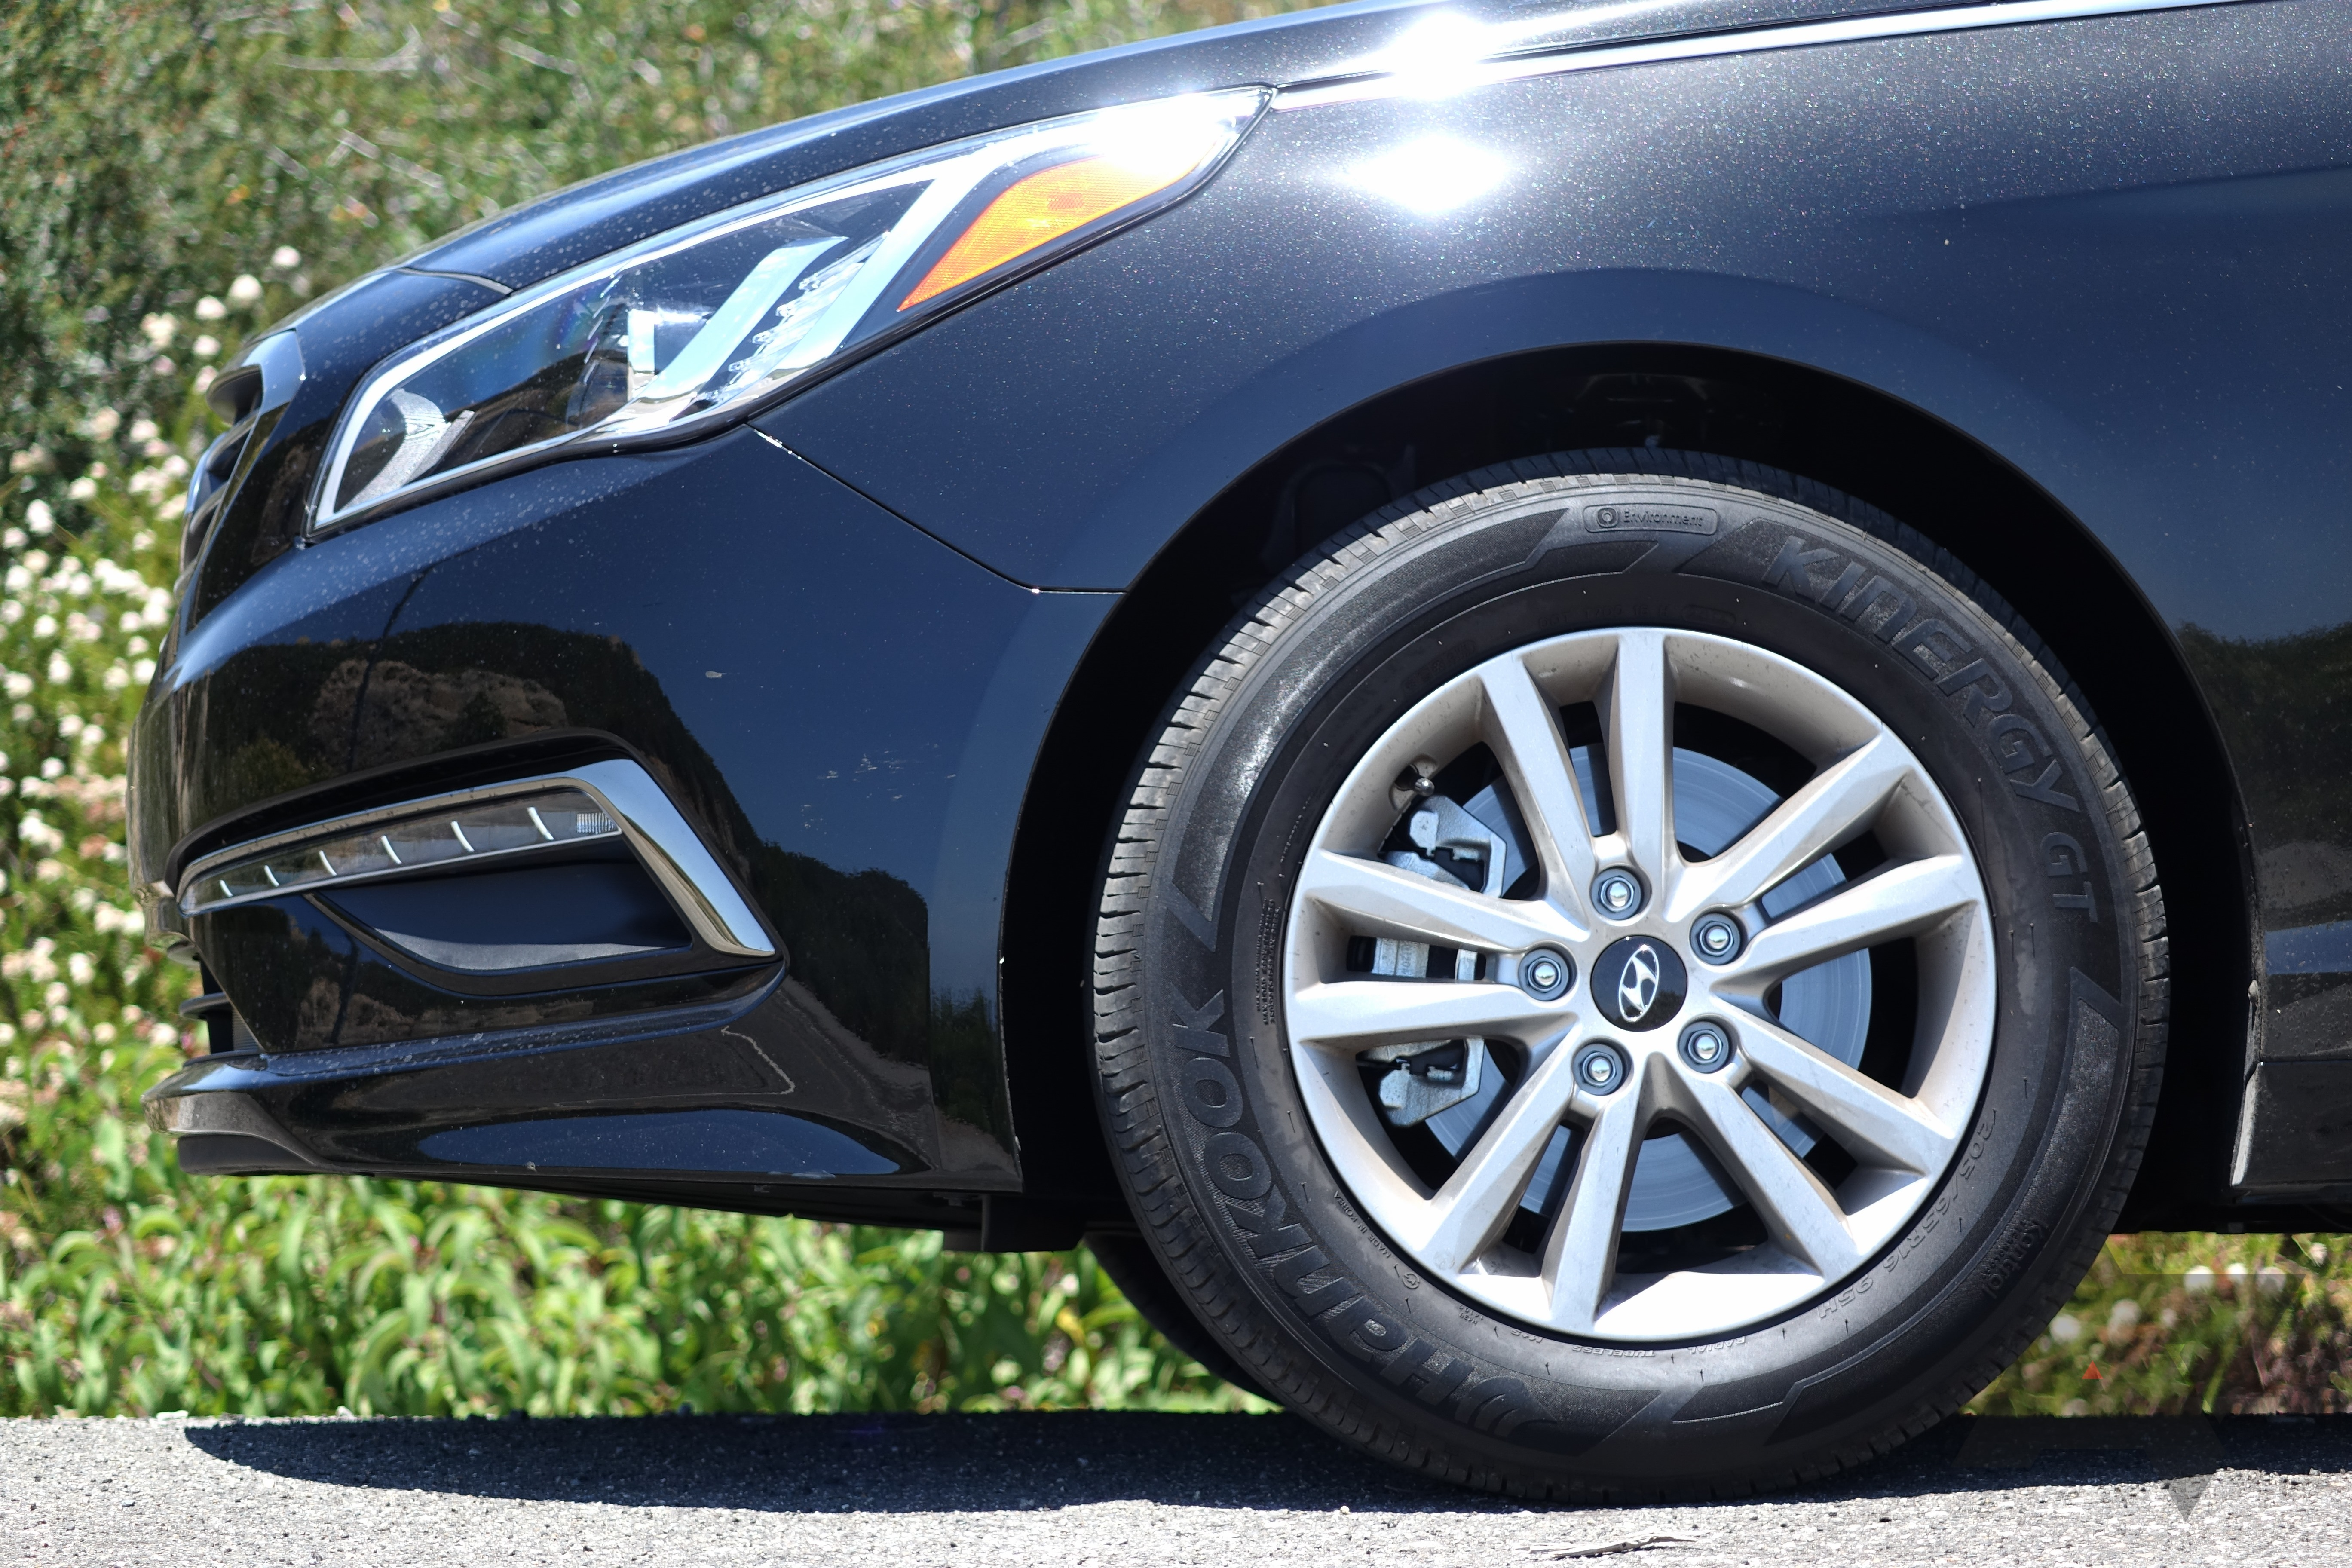 [Android Car Review] The 2015 Hyundai Sonata Is Android Autou0027s Debut Vehicle,  And Itu0027s A Great One